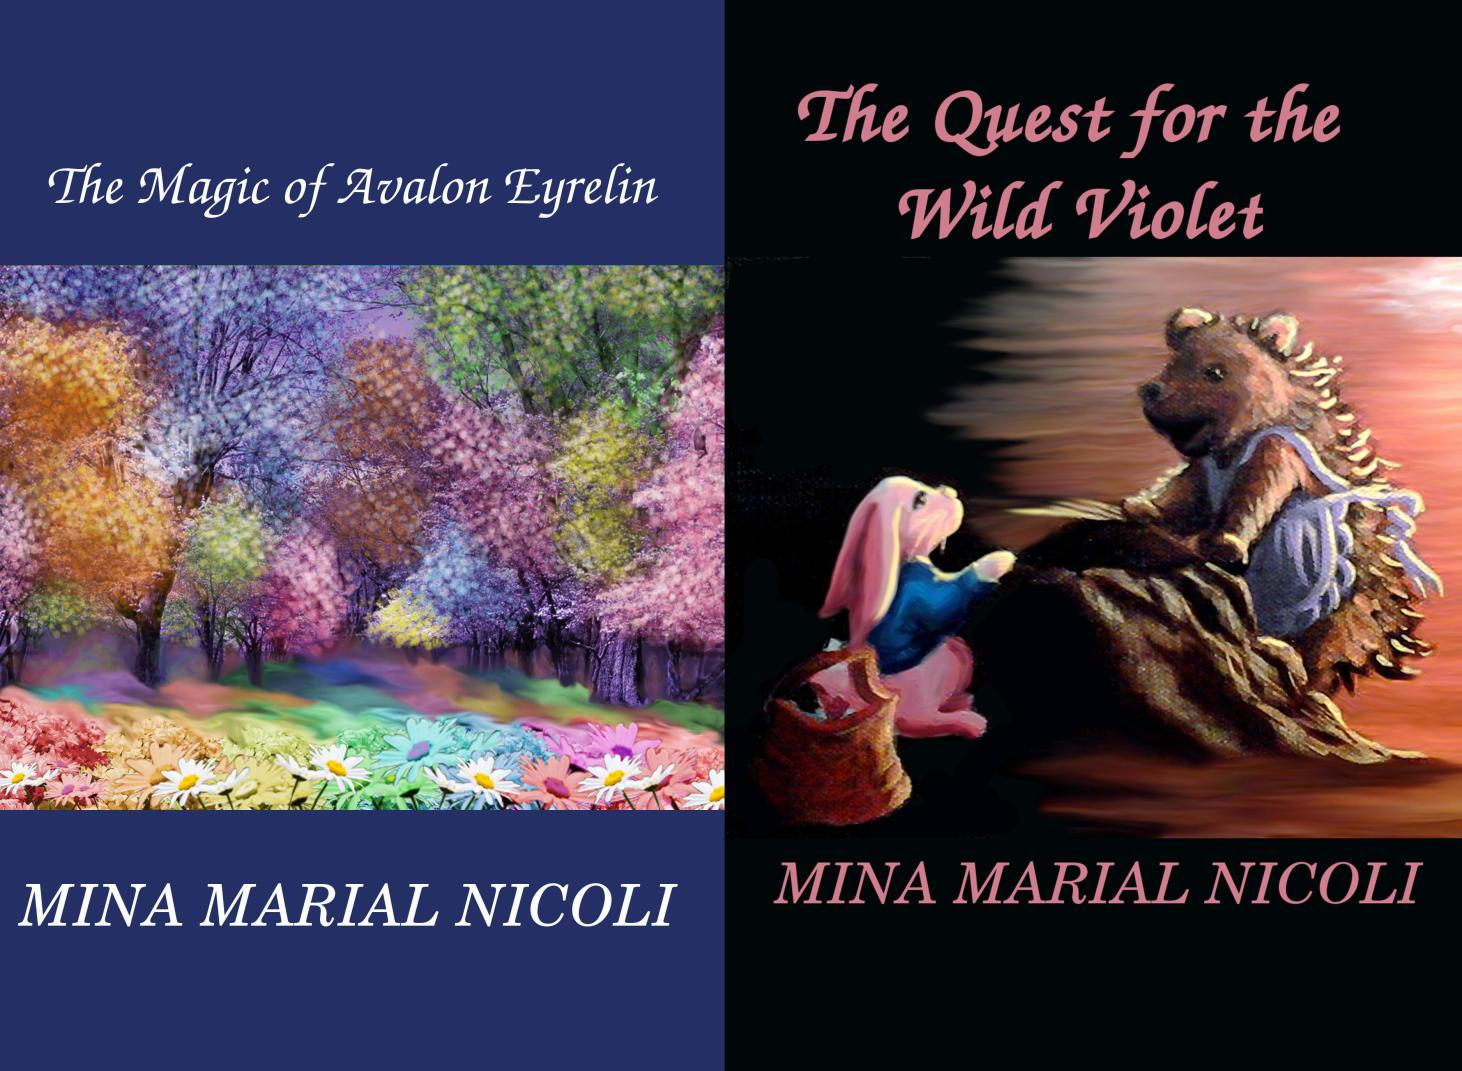 The Magic of Avalon Eyrelin and The Quest for the Wild Violet Free eBook Promo! 10/14-10/18